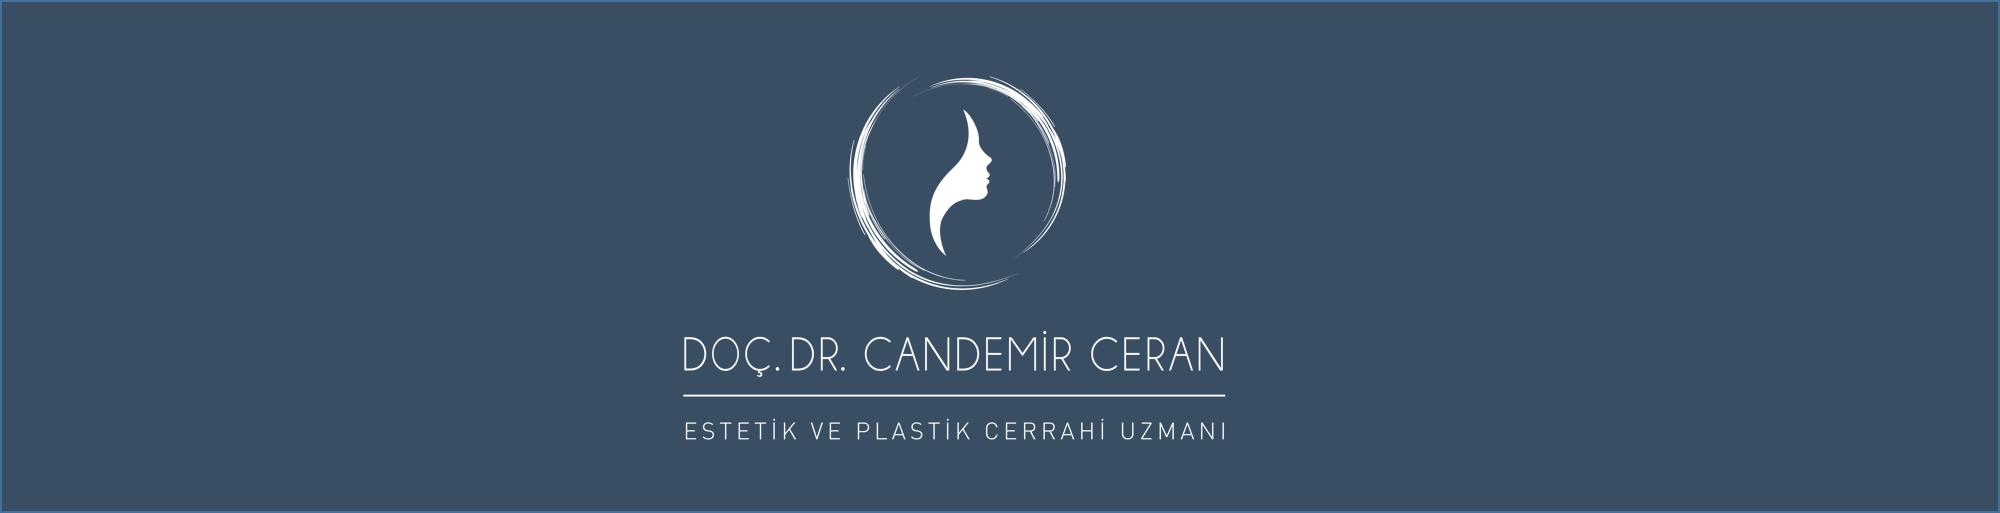 Doç. Dr. Candemir Ceran Gallery Photo